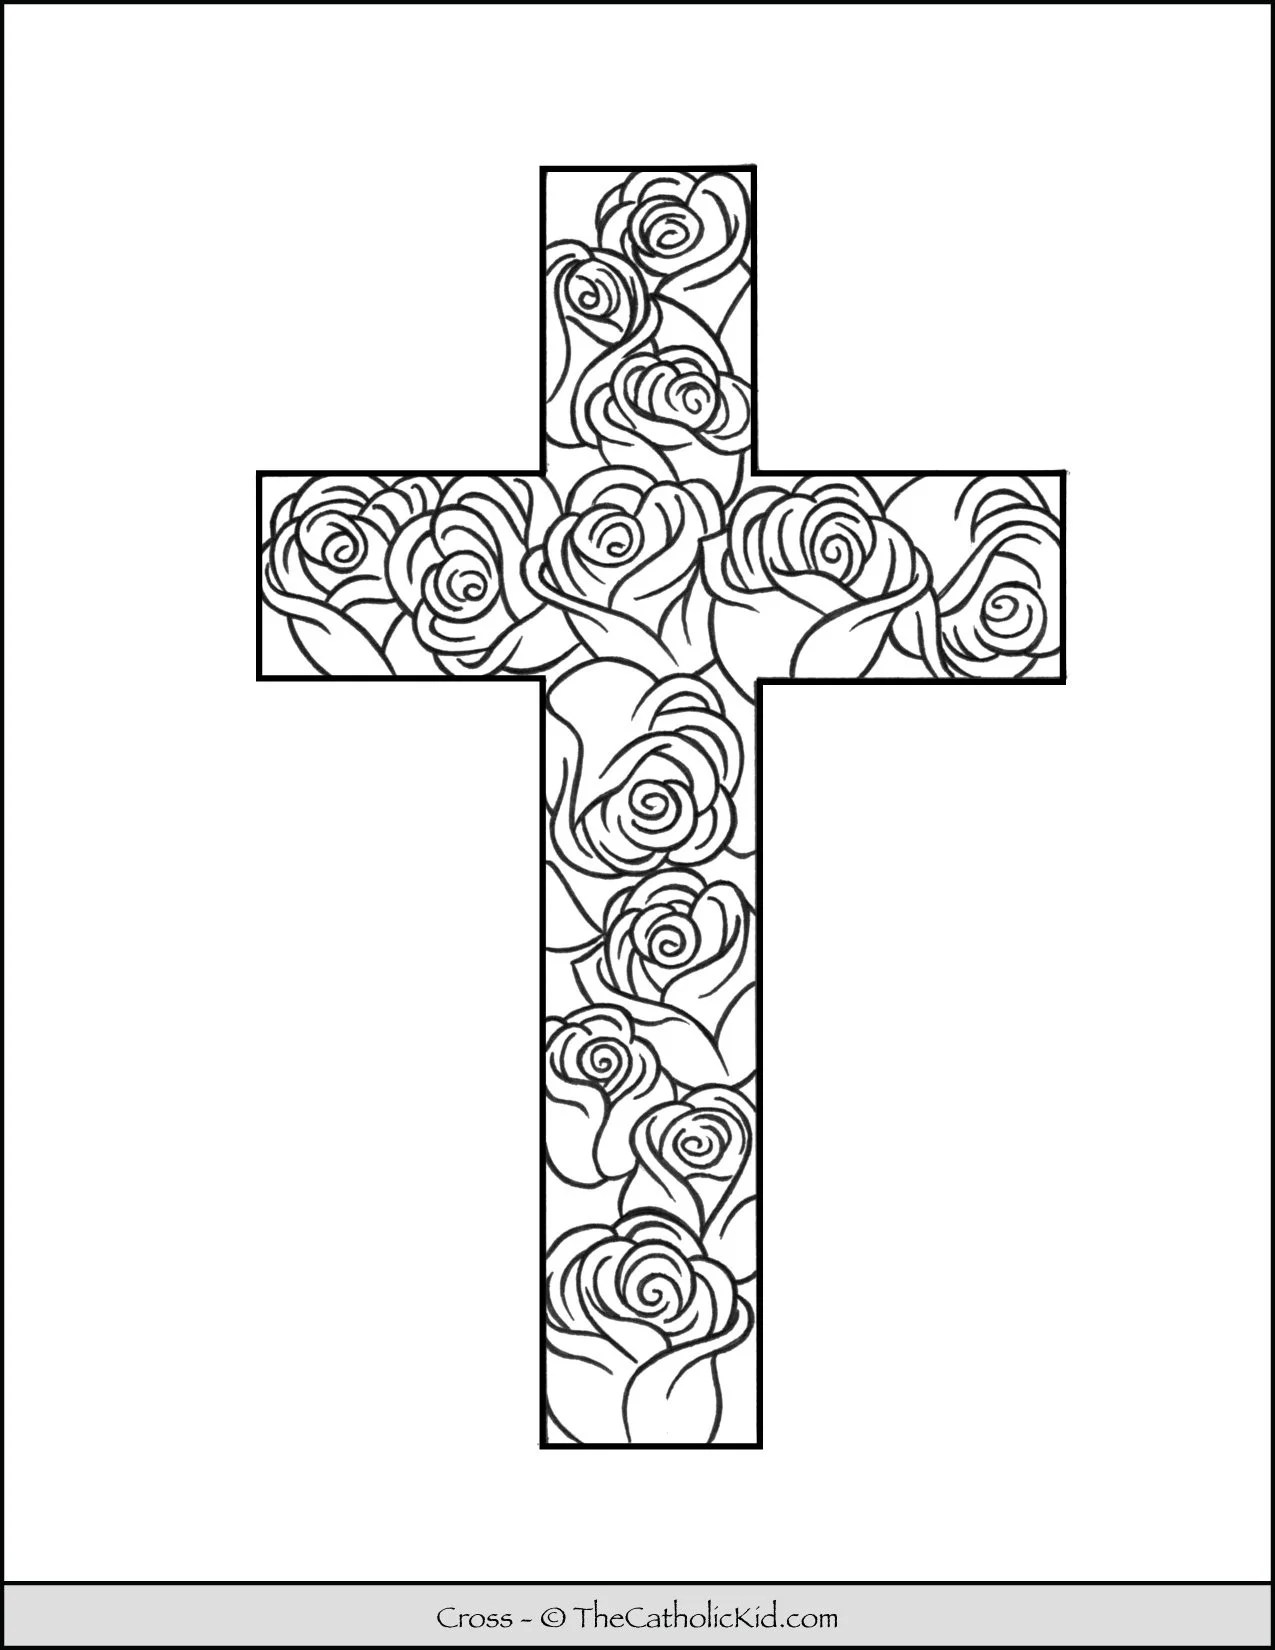 Cross Coloring Page : cross, coloring, Cross, Coloring, Stained, Glass, Pattern, TheCatholicKid.com